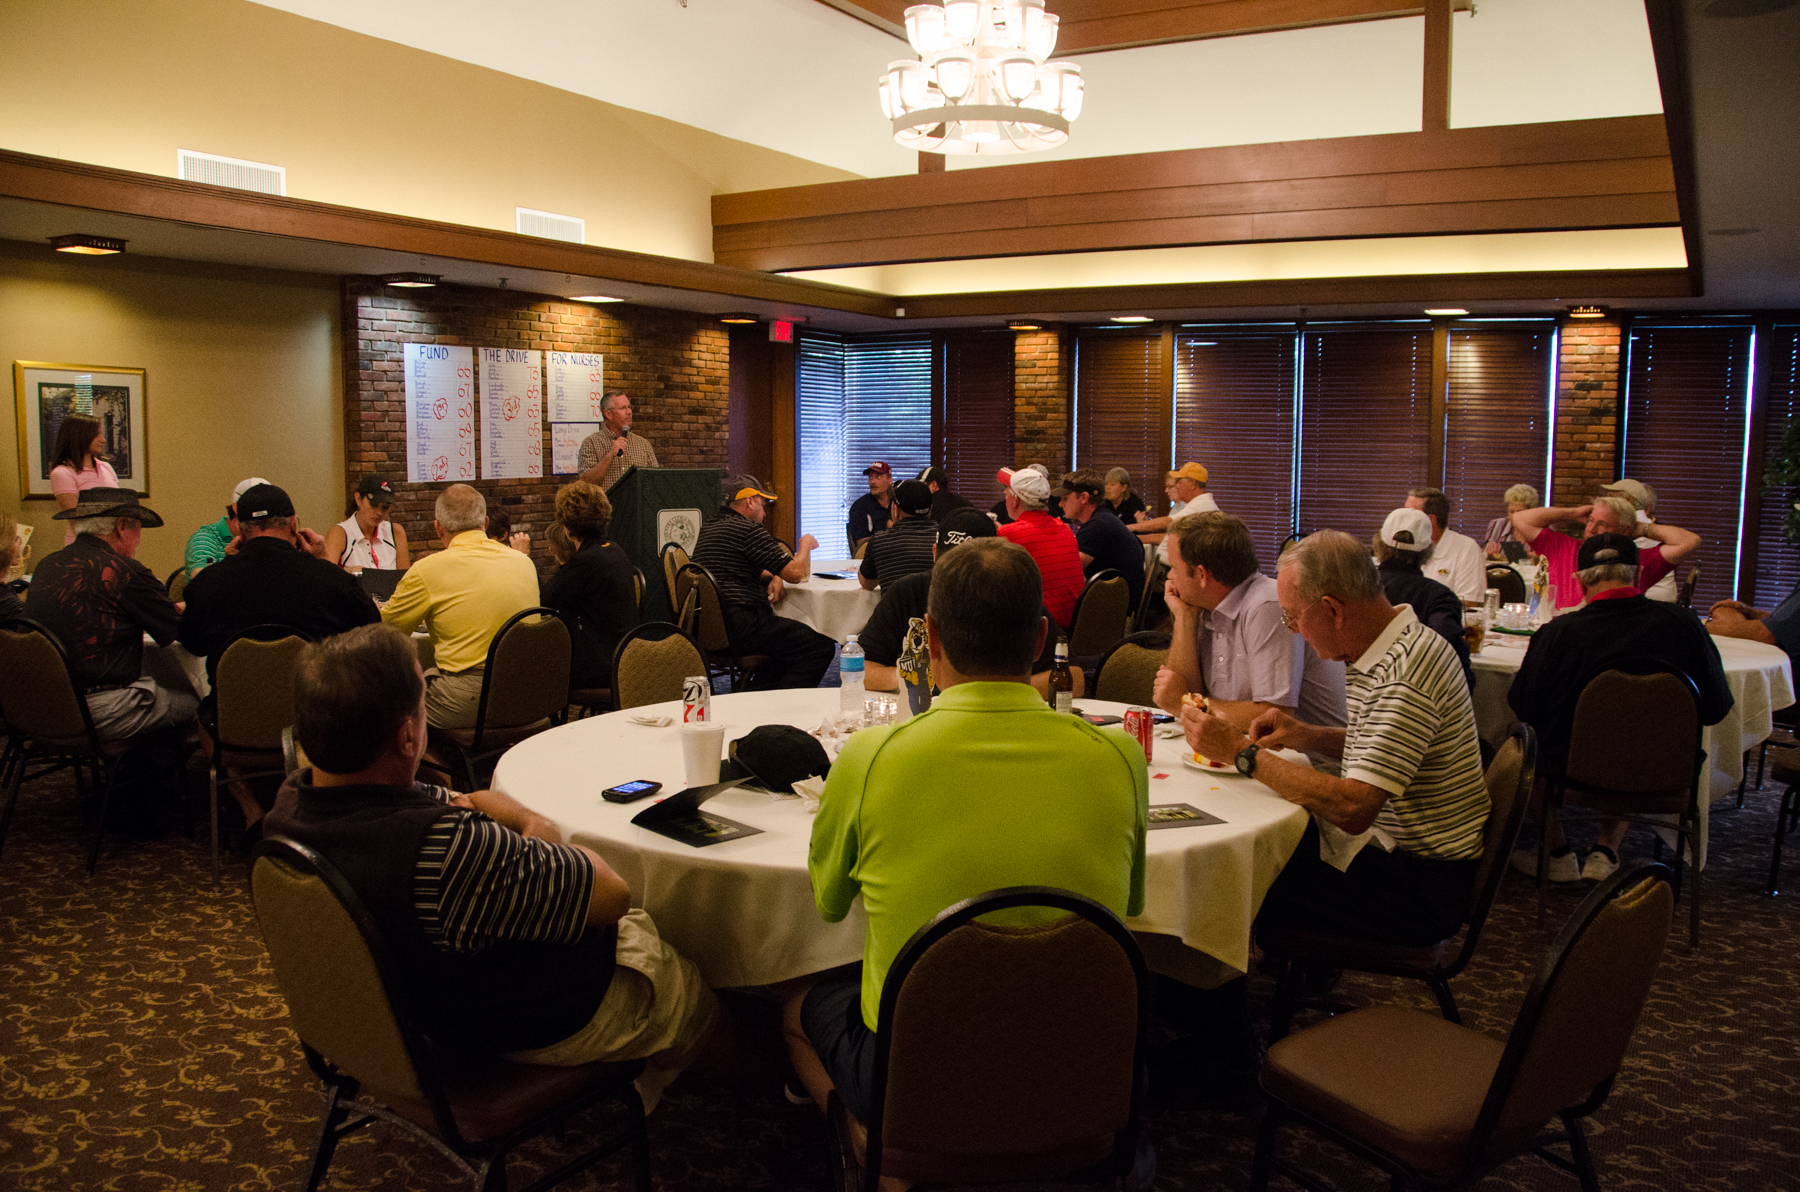 20121001_golf_tournament_118_4x6.jpg